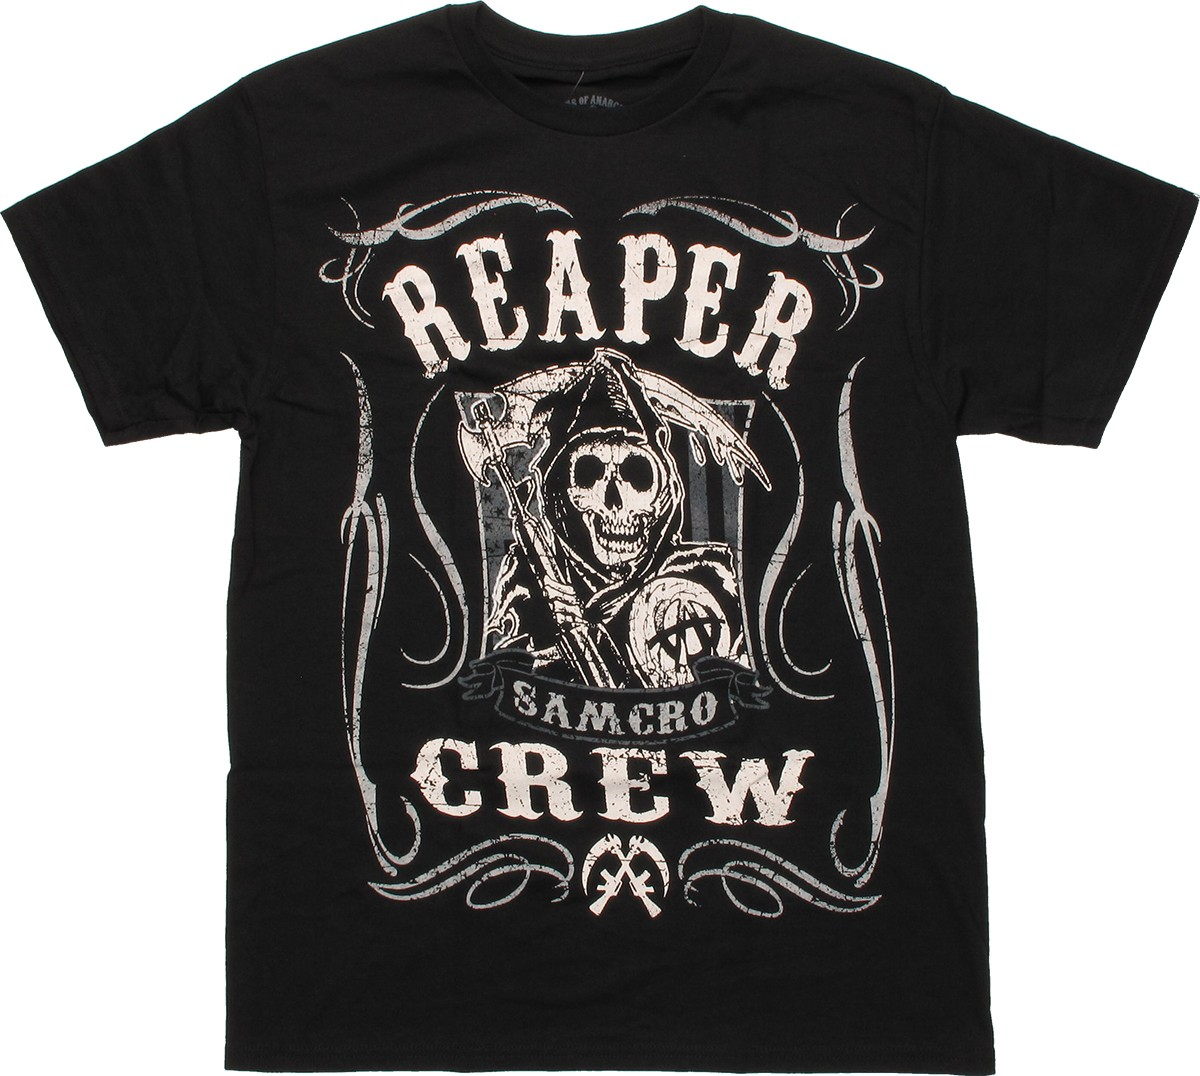 sons of anarchy reaper crew scroll t shirt. Black Bedroom Furniture Sets. Home Design Ideas